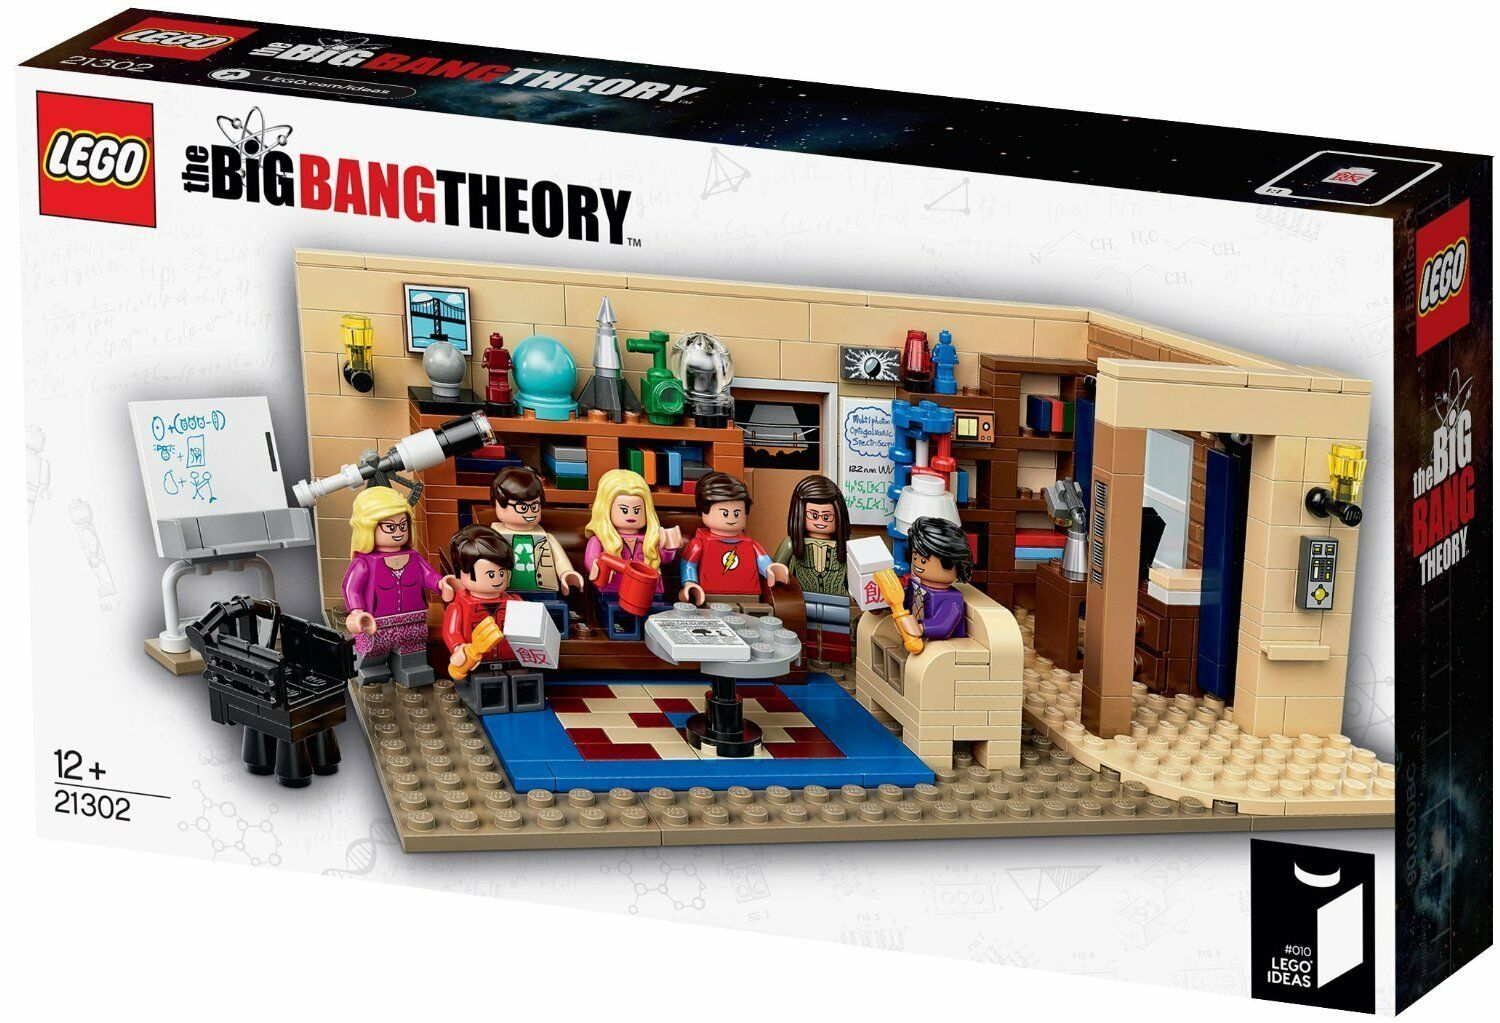 LEGO Ideas 21302 The Big Bang Theory BRAND NEW in Box BNISB